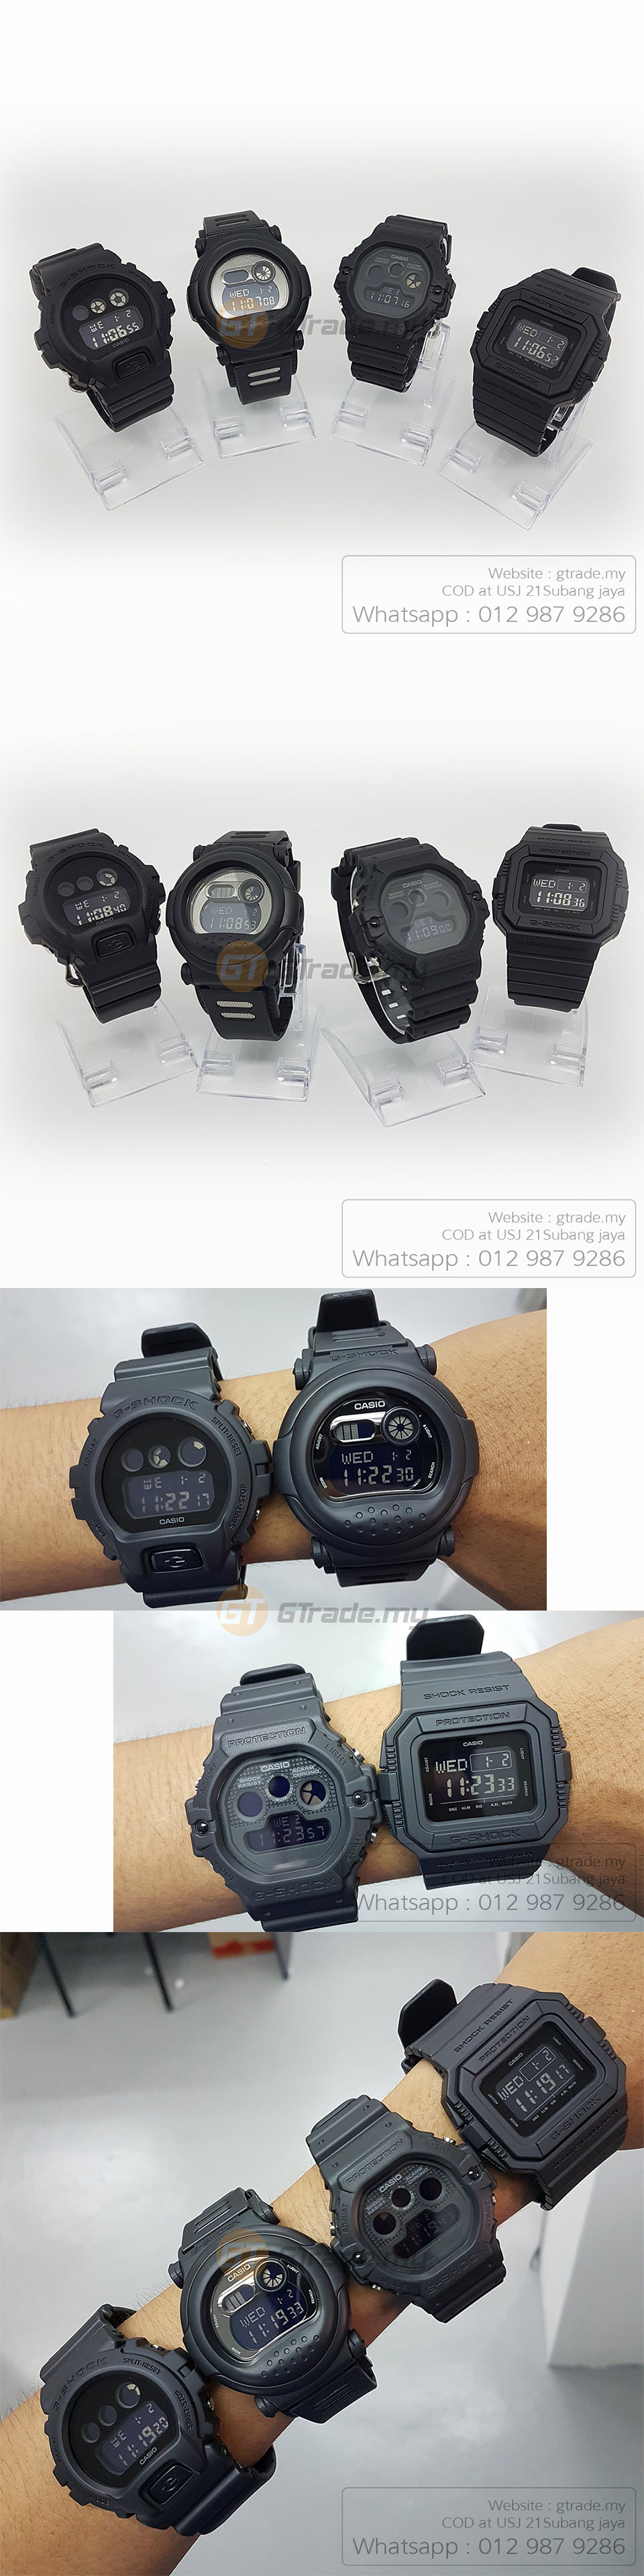 casio-g-shock-digital-watch-dw-d5500bb-1d-r